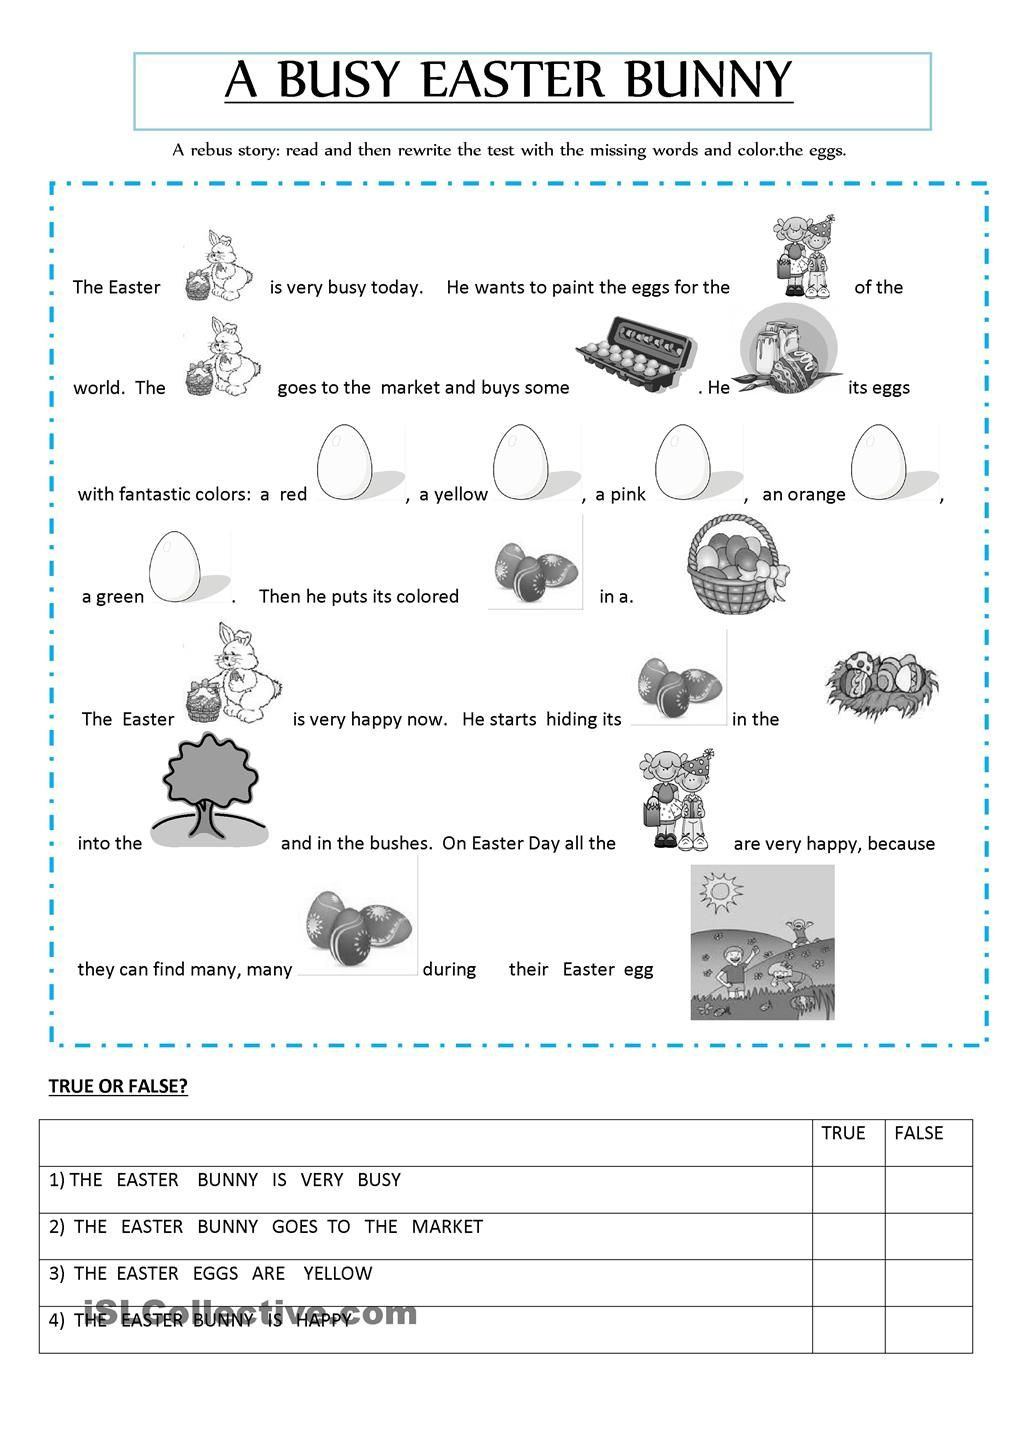 Rebus Story About An Easter Bunny Easter Worksheets Easter Readings Easter Reading Comprehension [ 1440 x 1018 Pixel ]